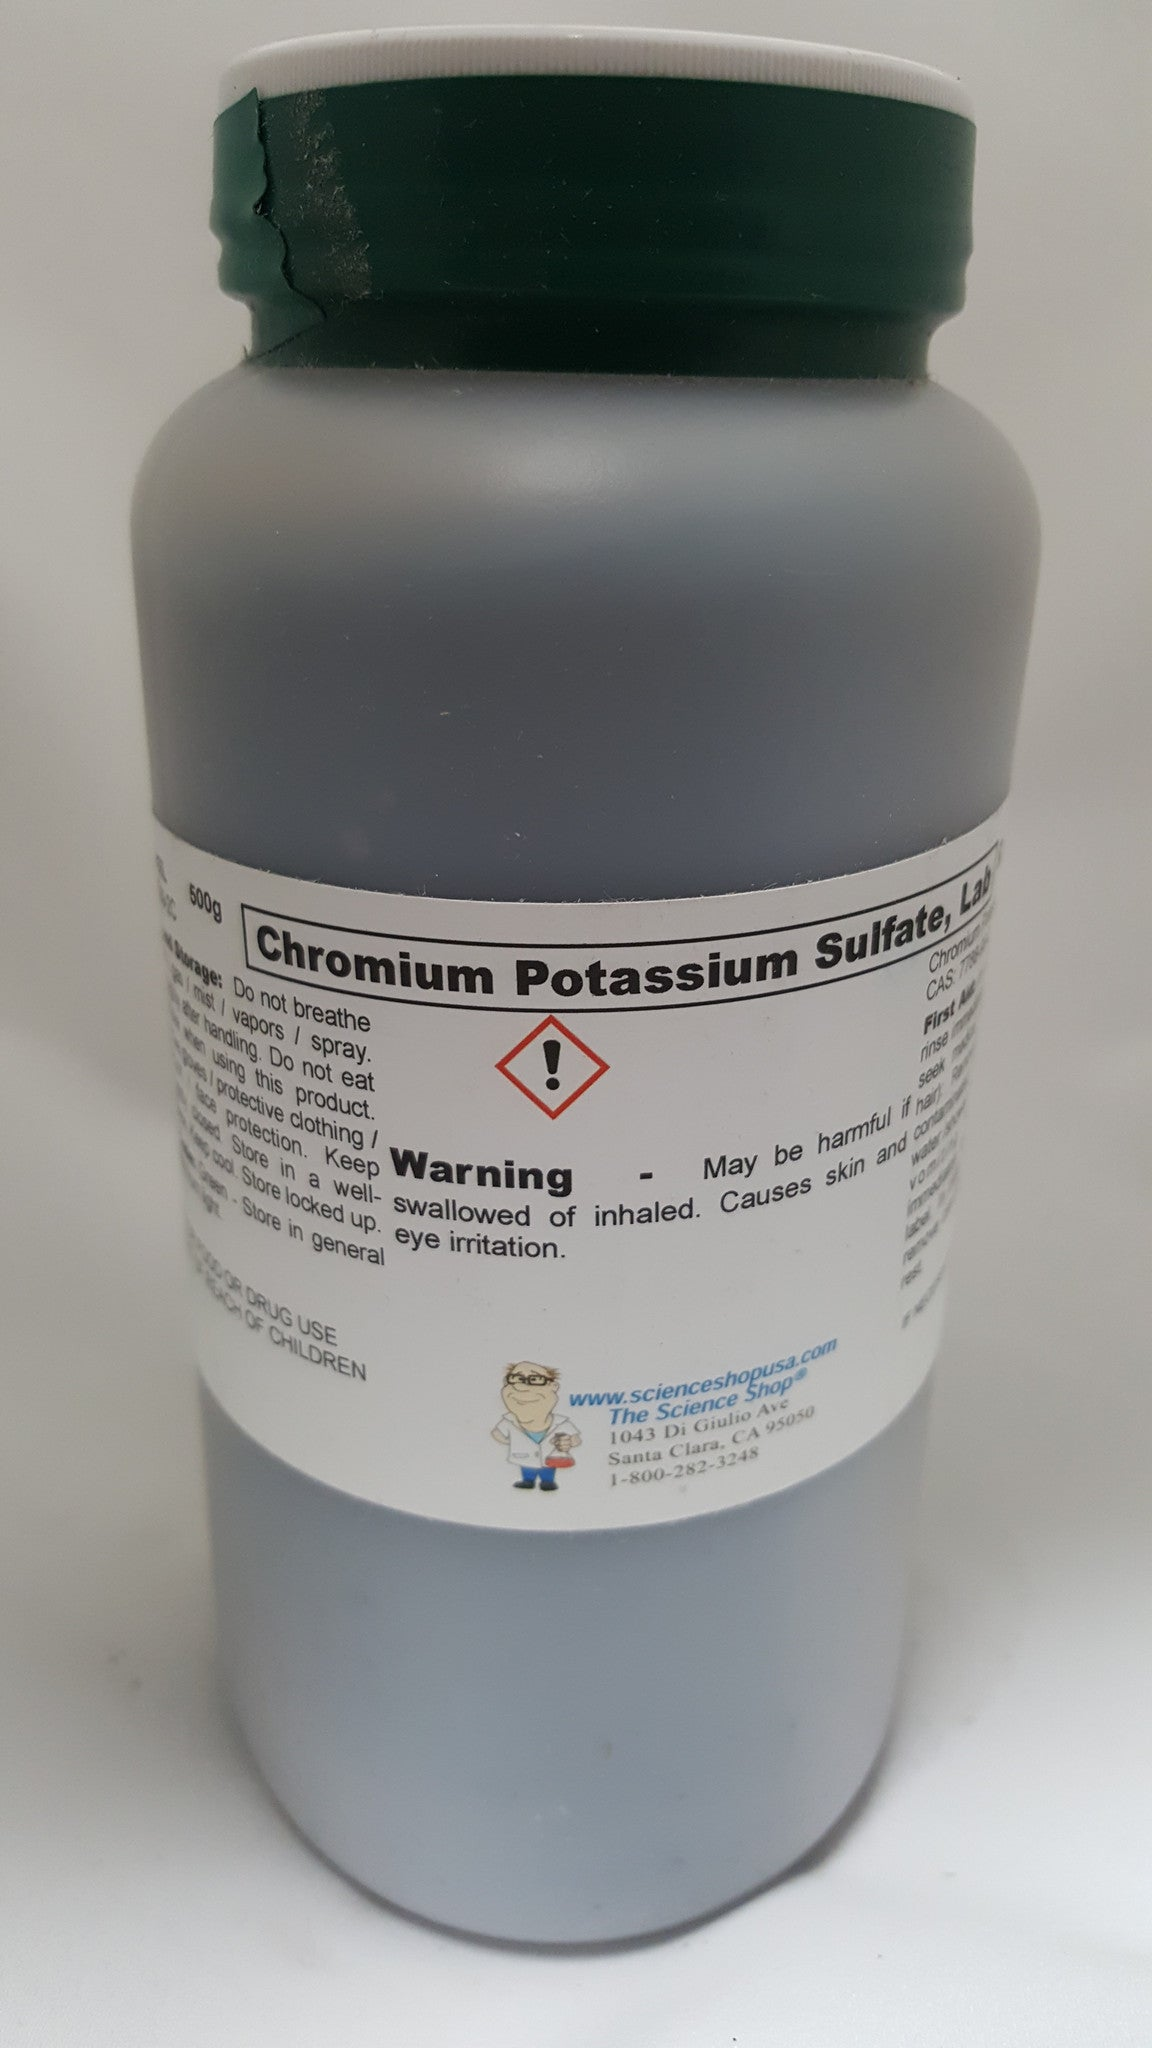 Chromium Potassium Sulfate 500g Lab Grade (Chrome Alum) - The Science Shop